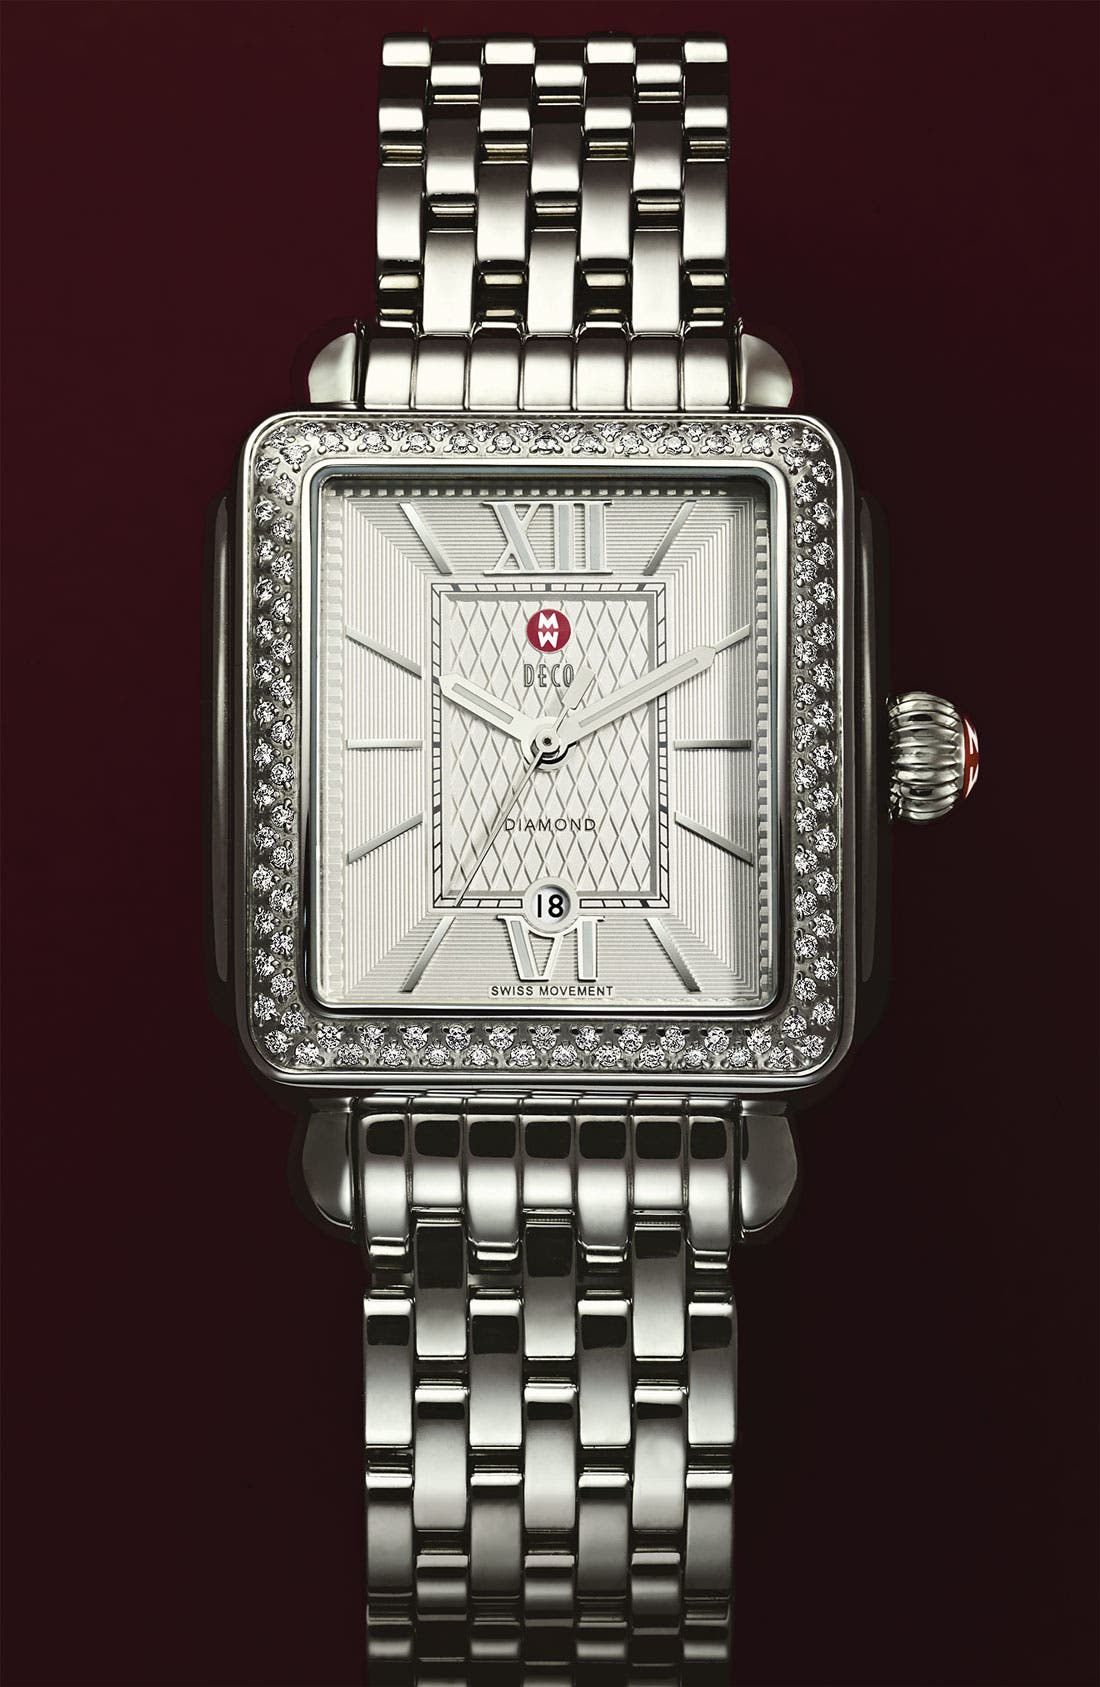 Alternate Image 1 Selected - MICHELE 'Deco Diamond' Guilloche Dial Customizable Watch